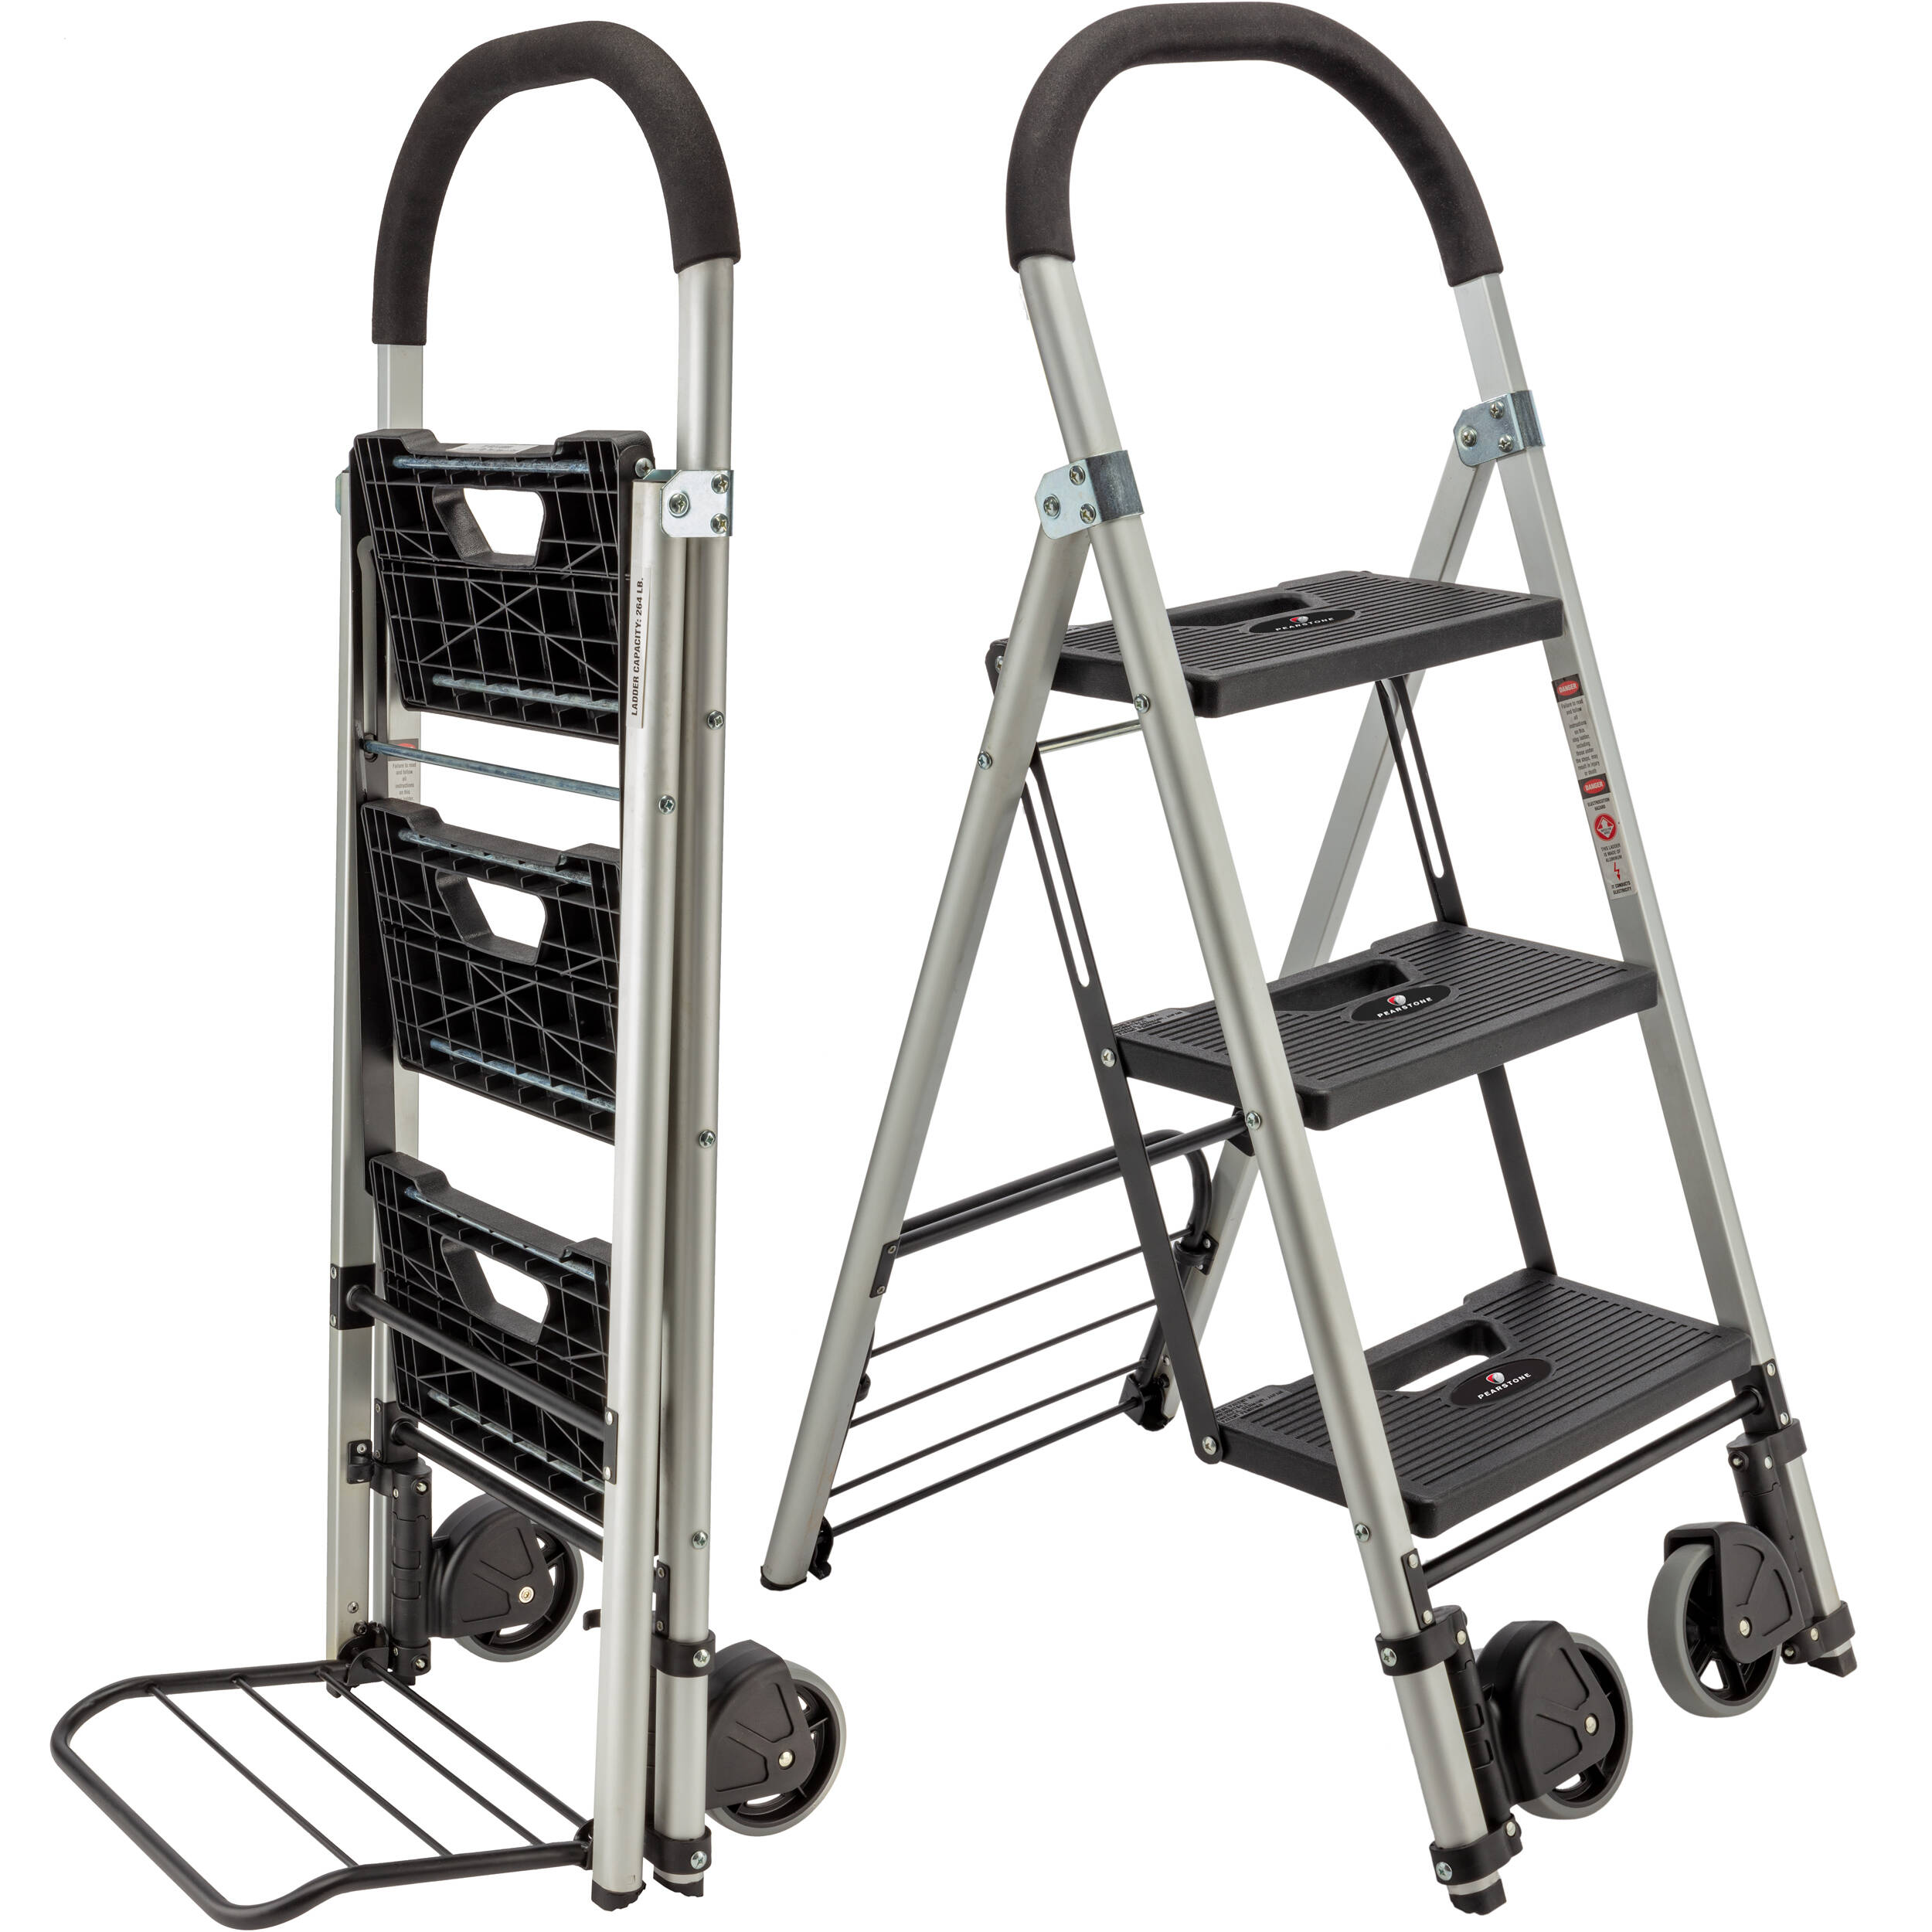 Pearstone Psl 3s 3 Step Hd Photographers Ladder Psl 3s B Amp H